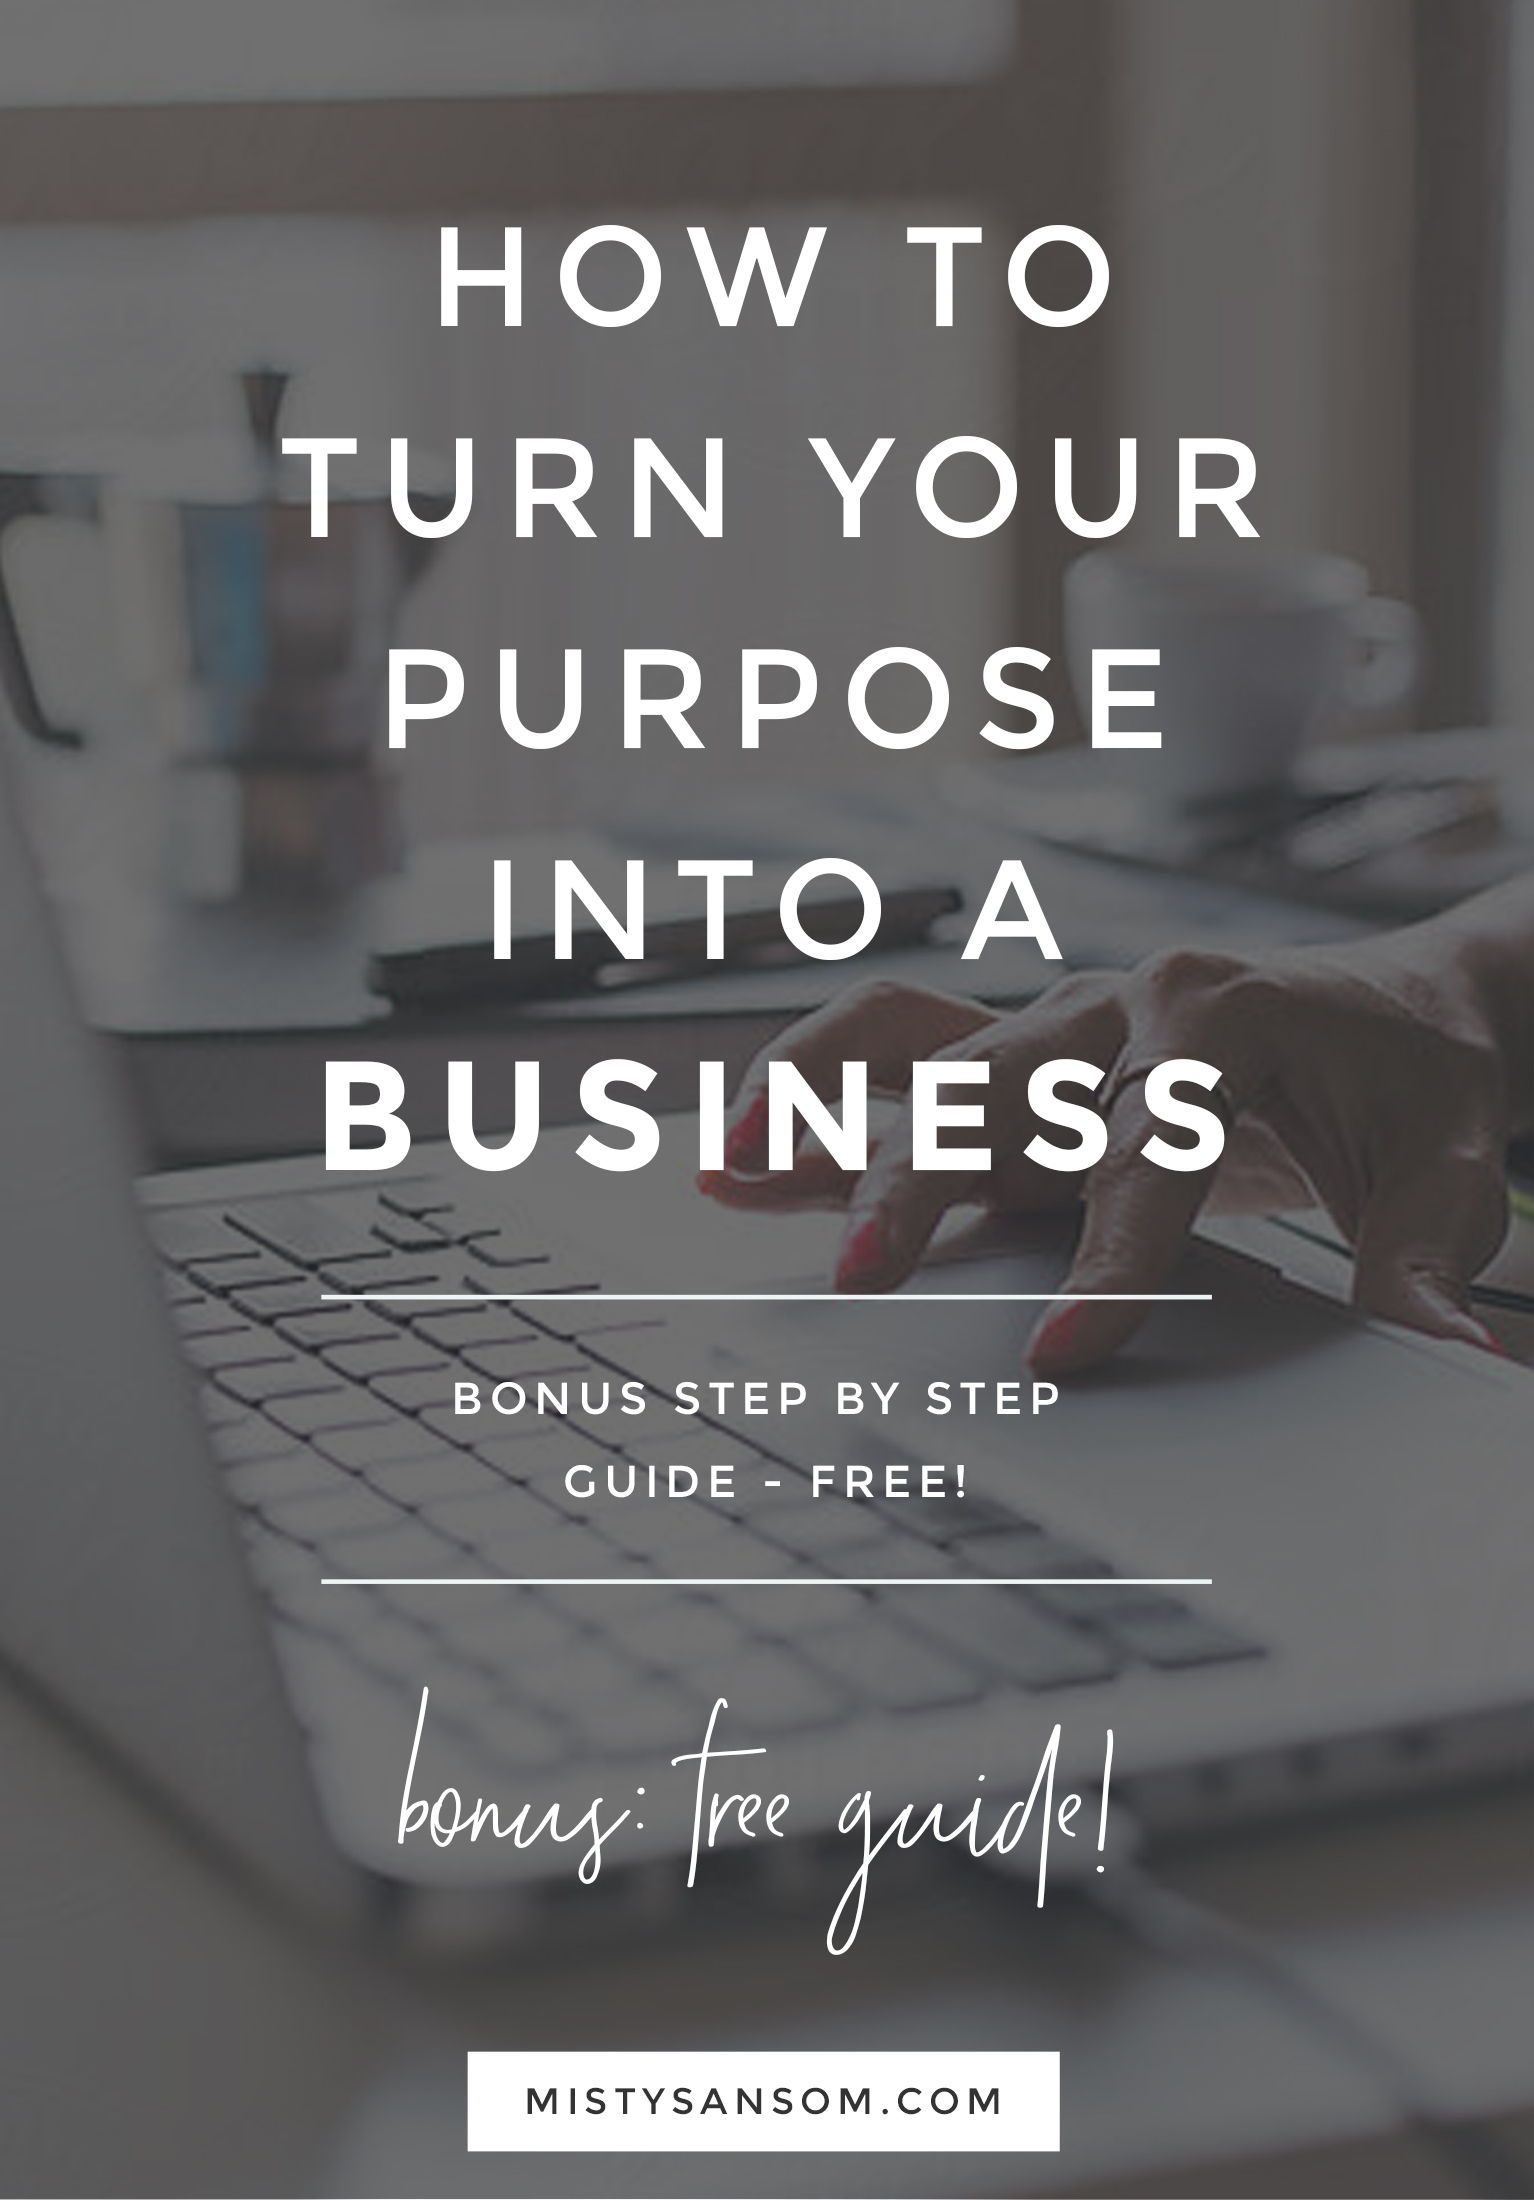 How To Turn Your Purpose Into A Business